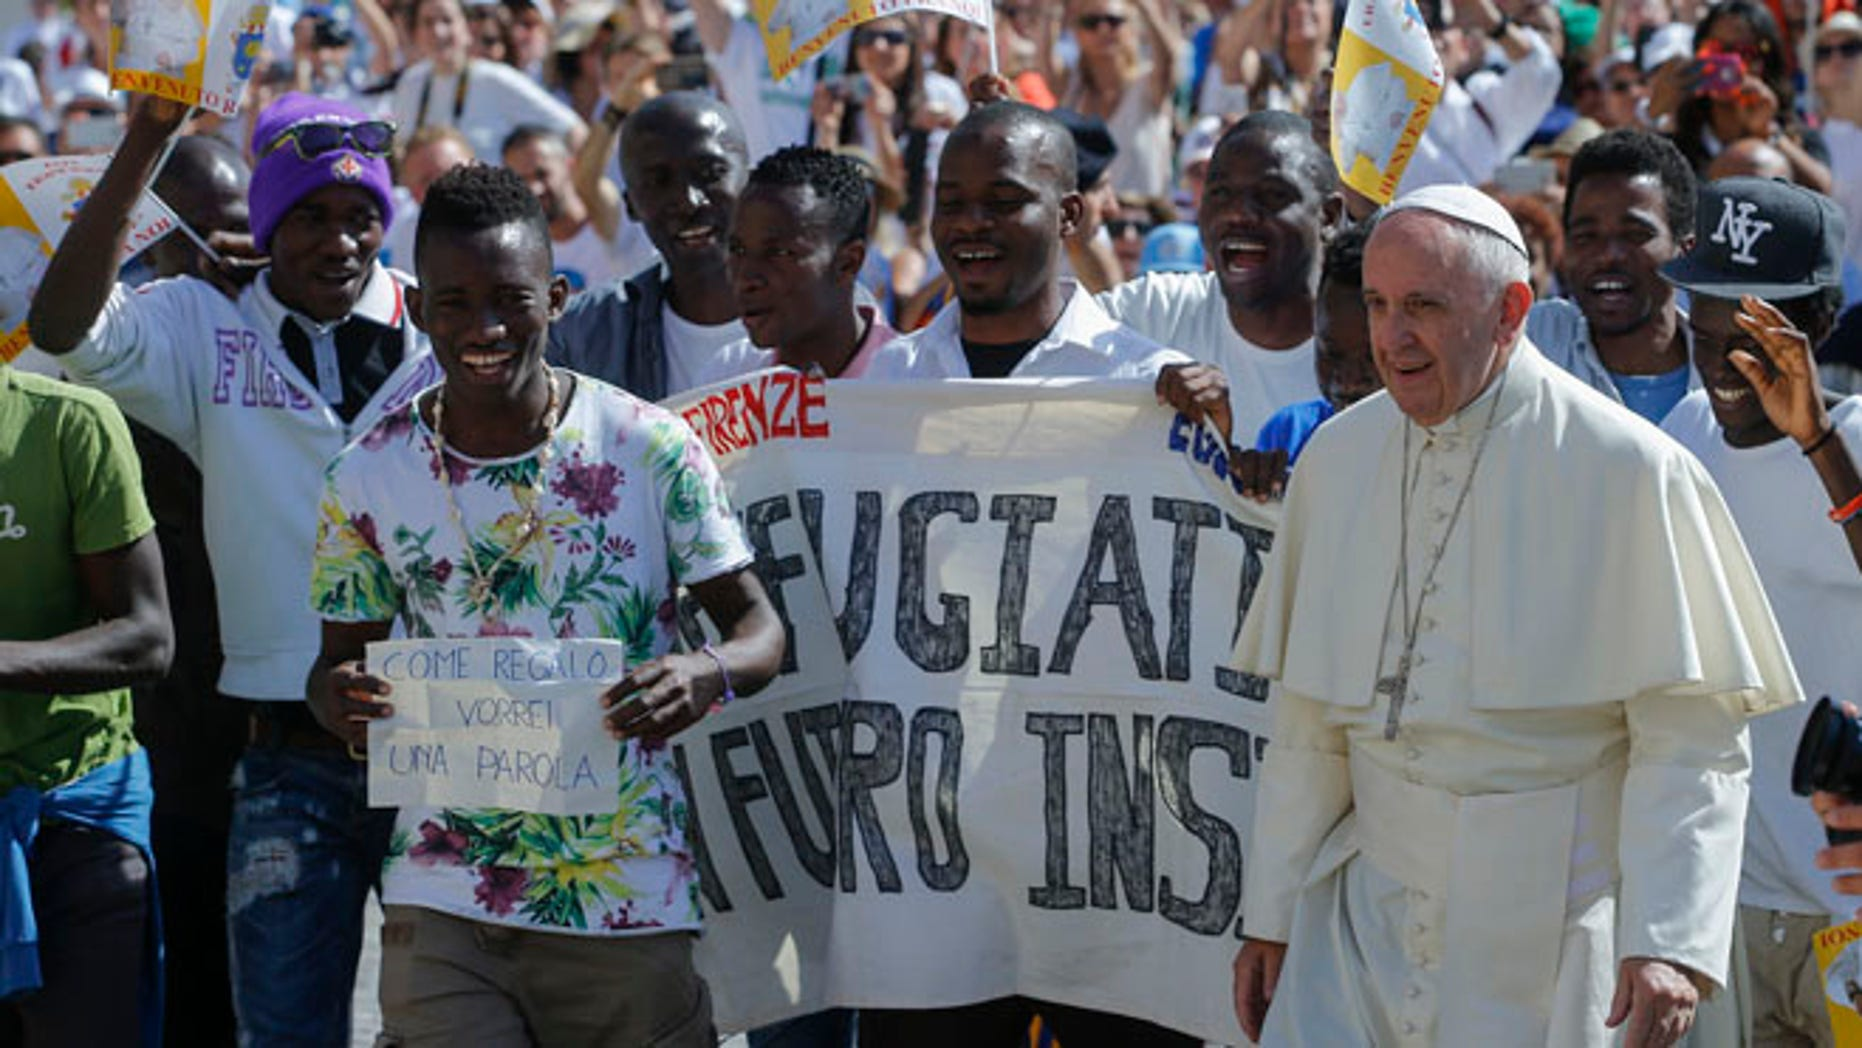 FILE- In this file photo dated Wednesday, June 22, 2016, Pope Francis walks with a group of refugees he invited to join him on the steps of St. Peter's Basilica during his weekly general audience in St. Peter's Square at the Vatican.  Pope Francis begins a five-day visit to Poland on upcoming Wednesday July 27, 2016, and hopes to inspire aid to homeless strangers and acts of mercy for refugees during his visit, although Poland has closed its borders to refugees. (AP Photo/Fabio Frustaci, FILE)